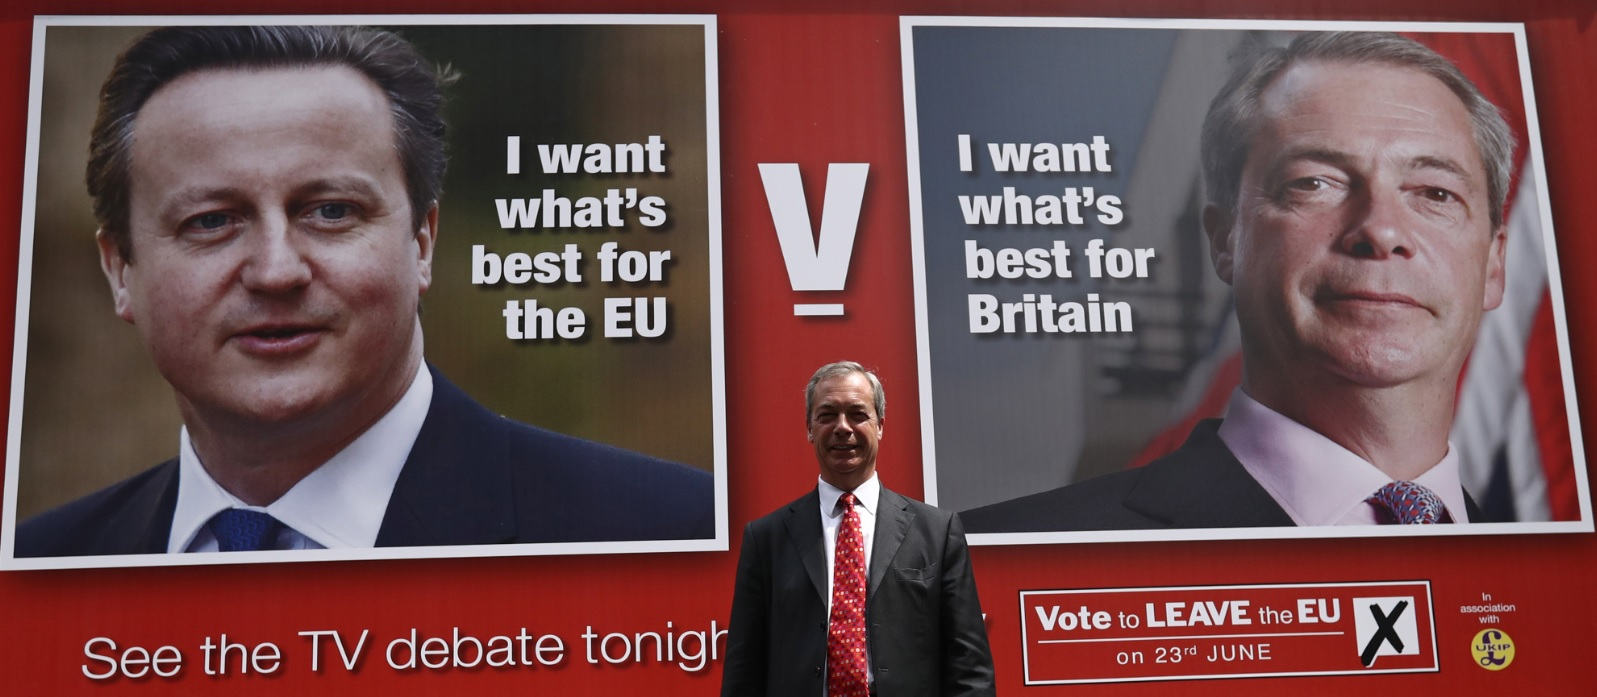 Nigel Farage, Ukip leader